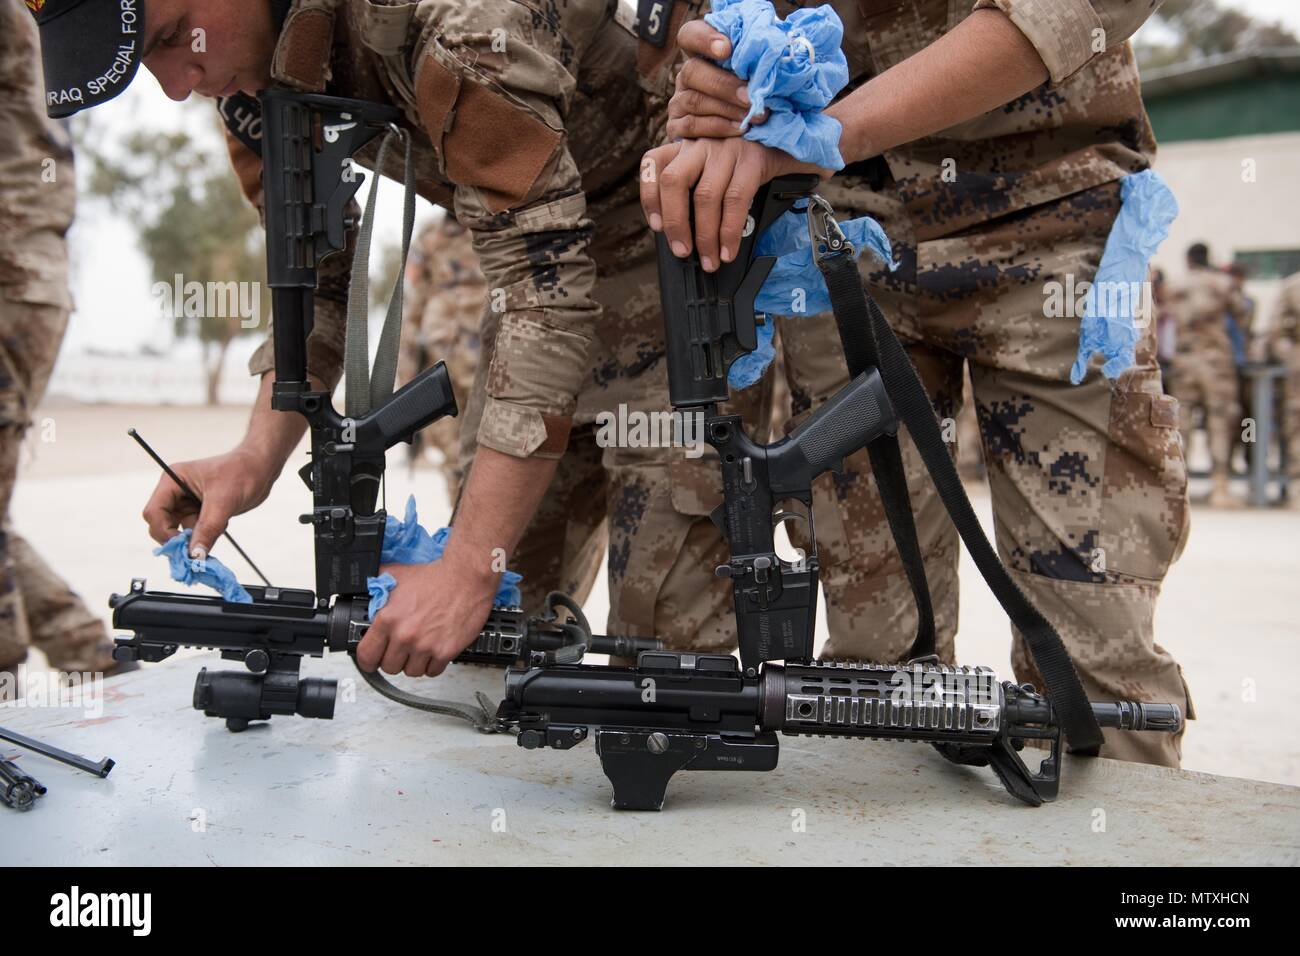 Iraqi Counter-Terrorism Service trainees conduct weapons maintenance near Baghdad, Iraq, Jan. 26, 2017. ICTS is Iraq's elite counter-terrorism force and has proven to be an effective fighting force against ISIL. This training is part of the overall Combined Joint Task Force – Operation Inherent Resolve building partner capacity mission to increase the capacity of partnered forces fighting ISIL. CJTF-OIR is the global Coalition to defeat ISIL in Iraq and Syria. (U.S. Army photo by Staff Sgt. Alex Manne) - Stock Image